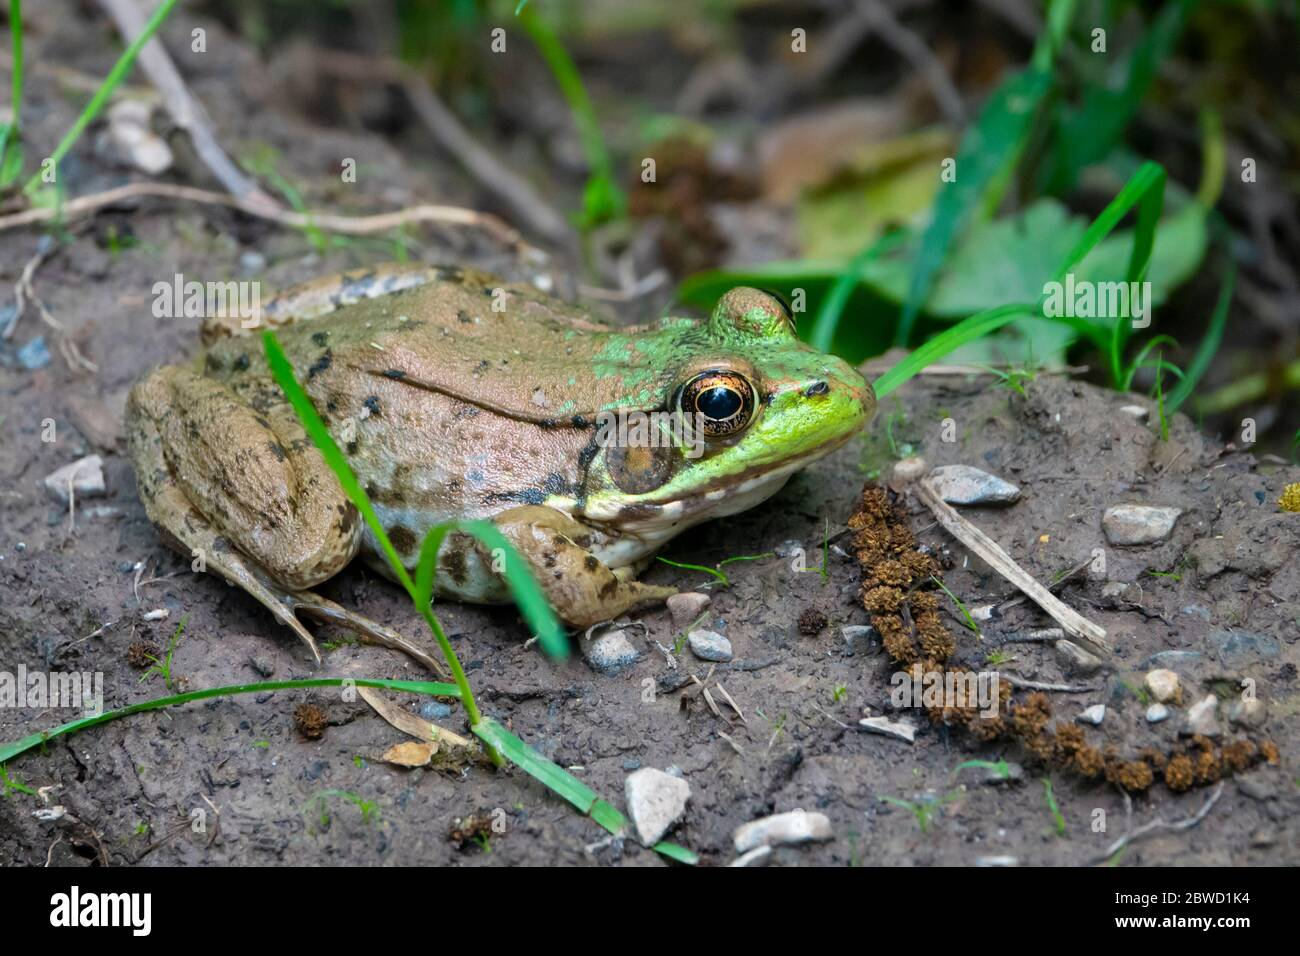 animals-frogs-american-bullfrog-lithobates-catesbeianus-near-a-pond-in-poolesville-maryland-md-adult-2BWD1K4.jpg